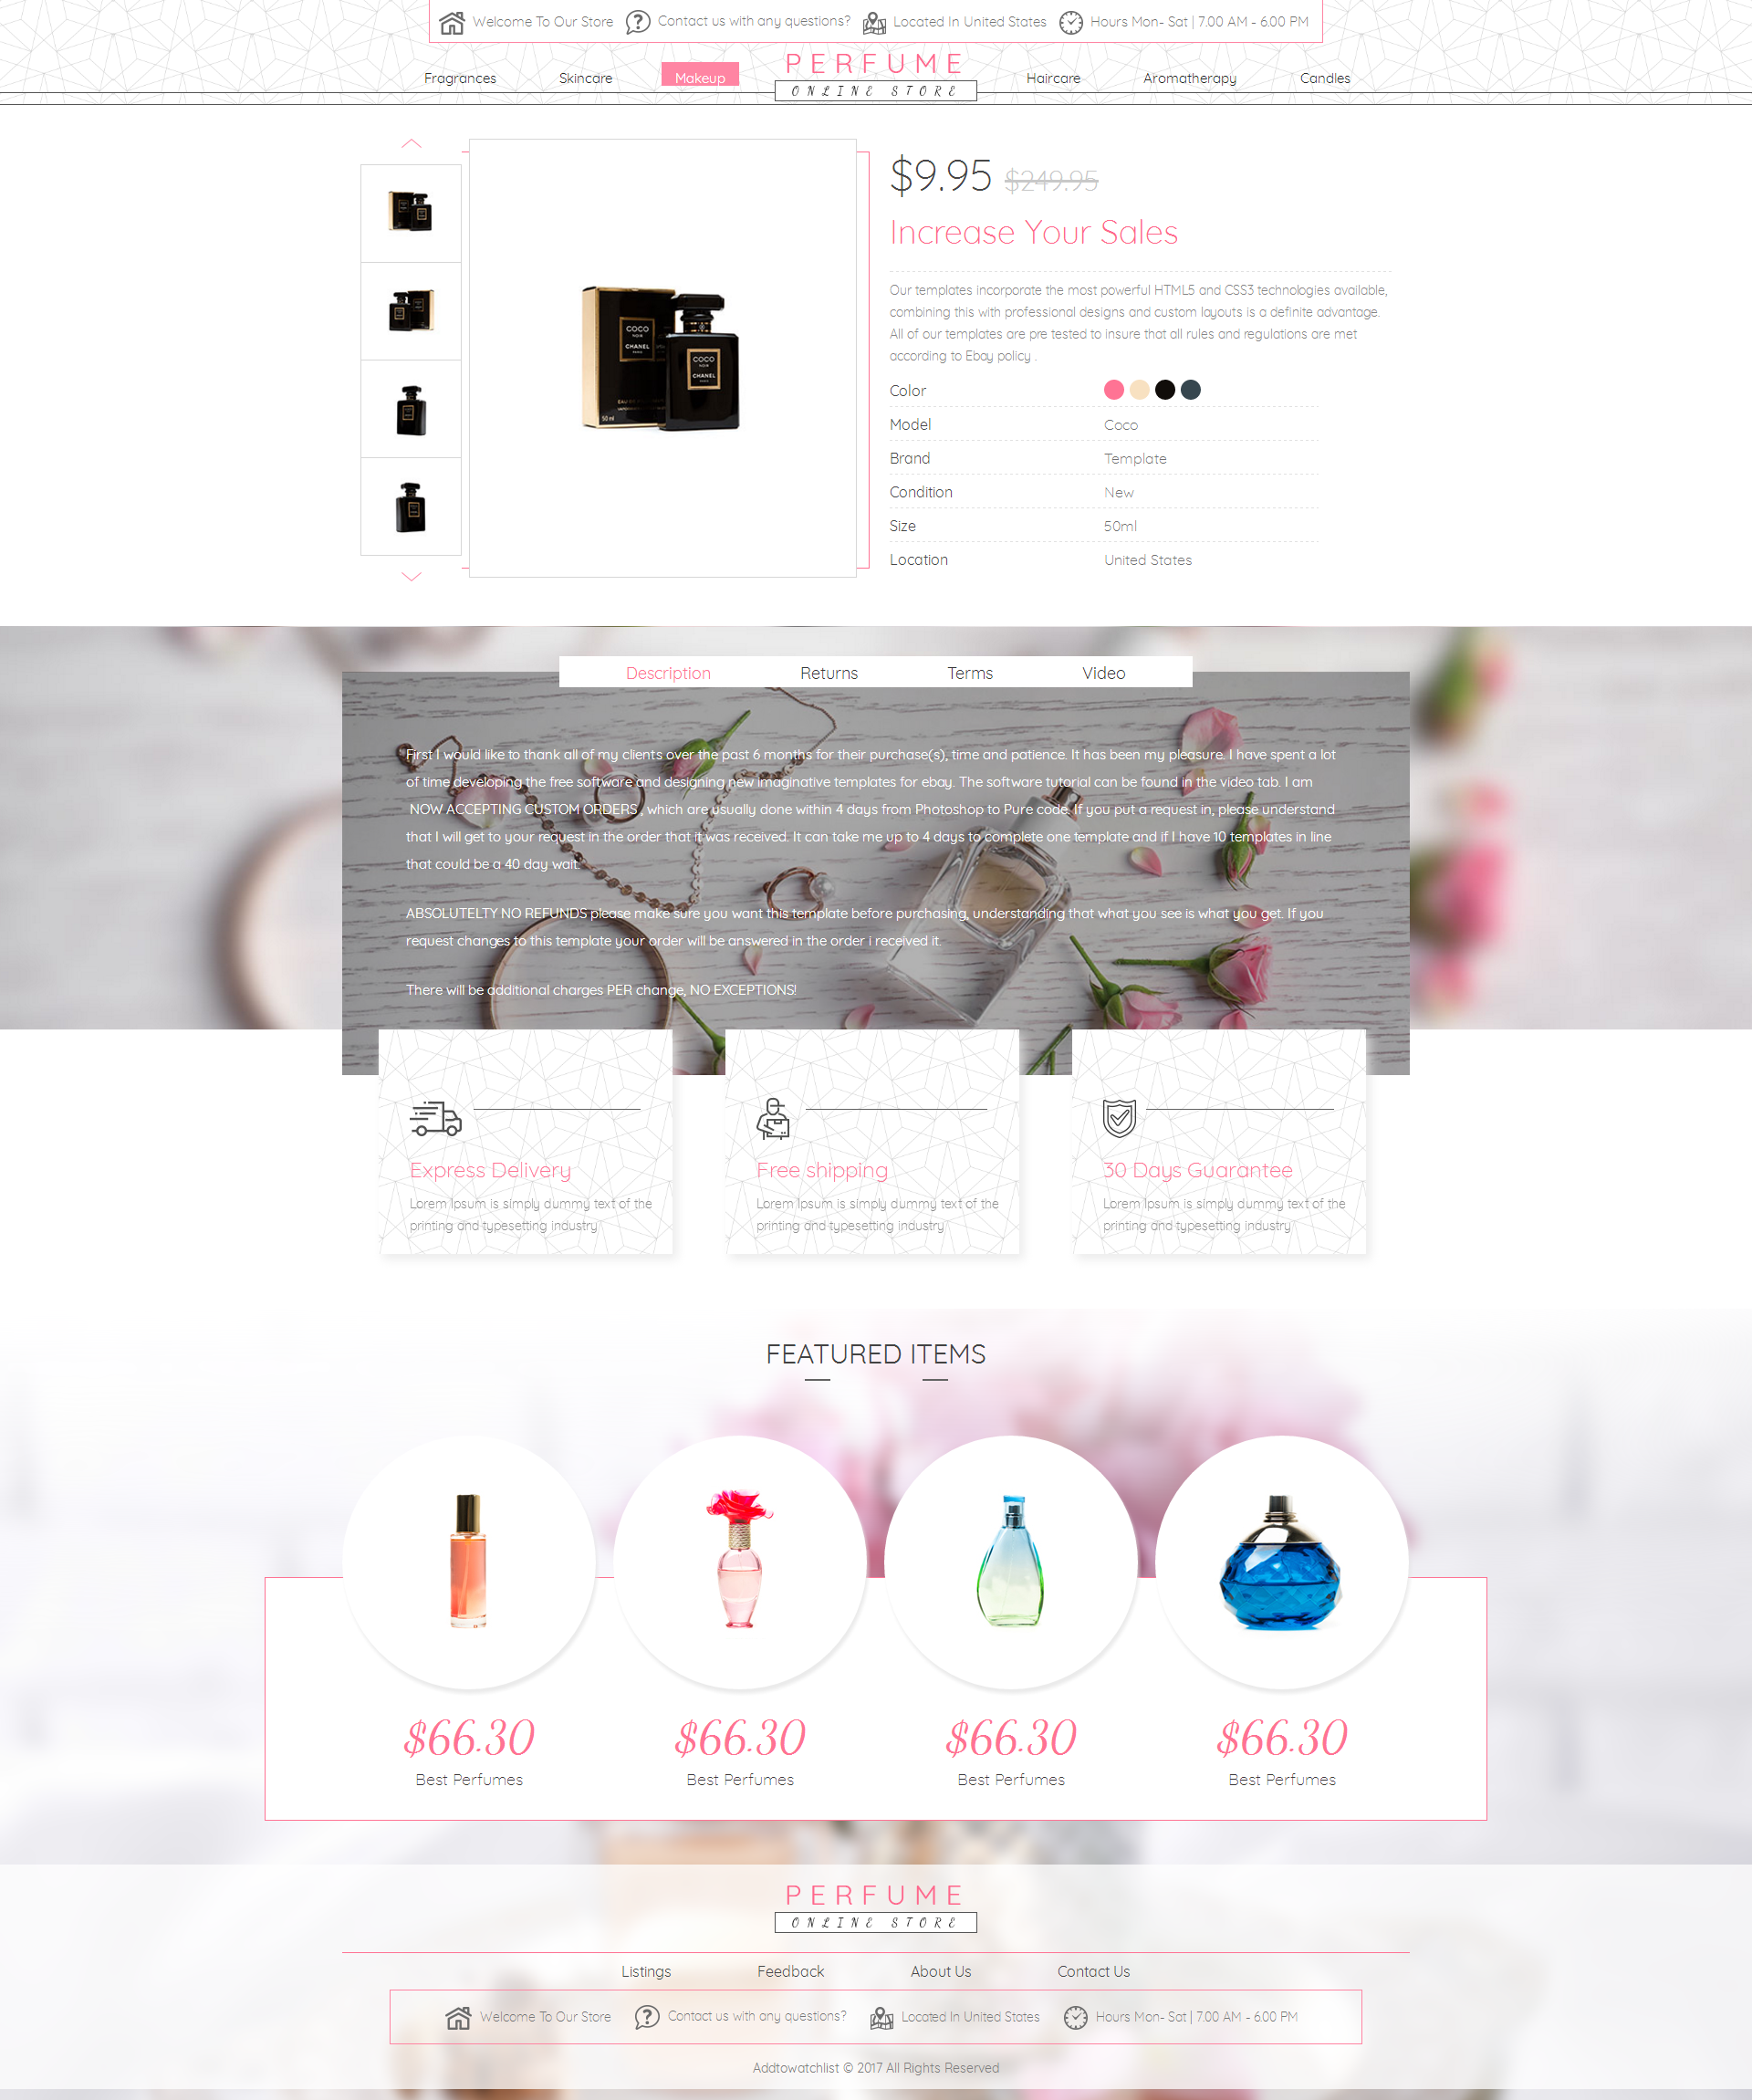 2019 Compliant Mobile Responsive Ebay Auction Listing Template Perfume Fragrance Ebay Templates Templates Html5 Templates